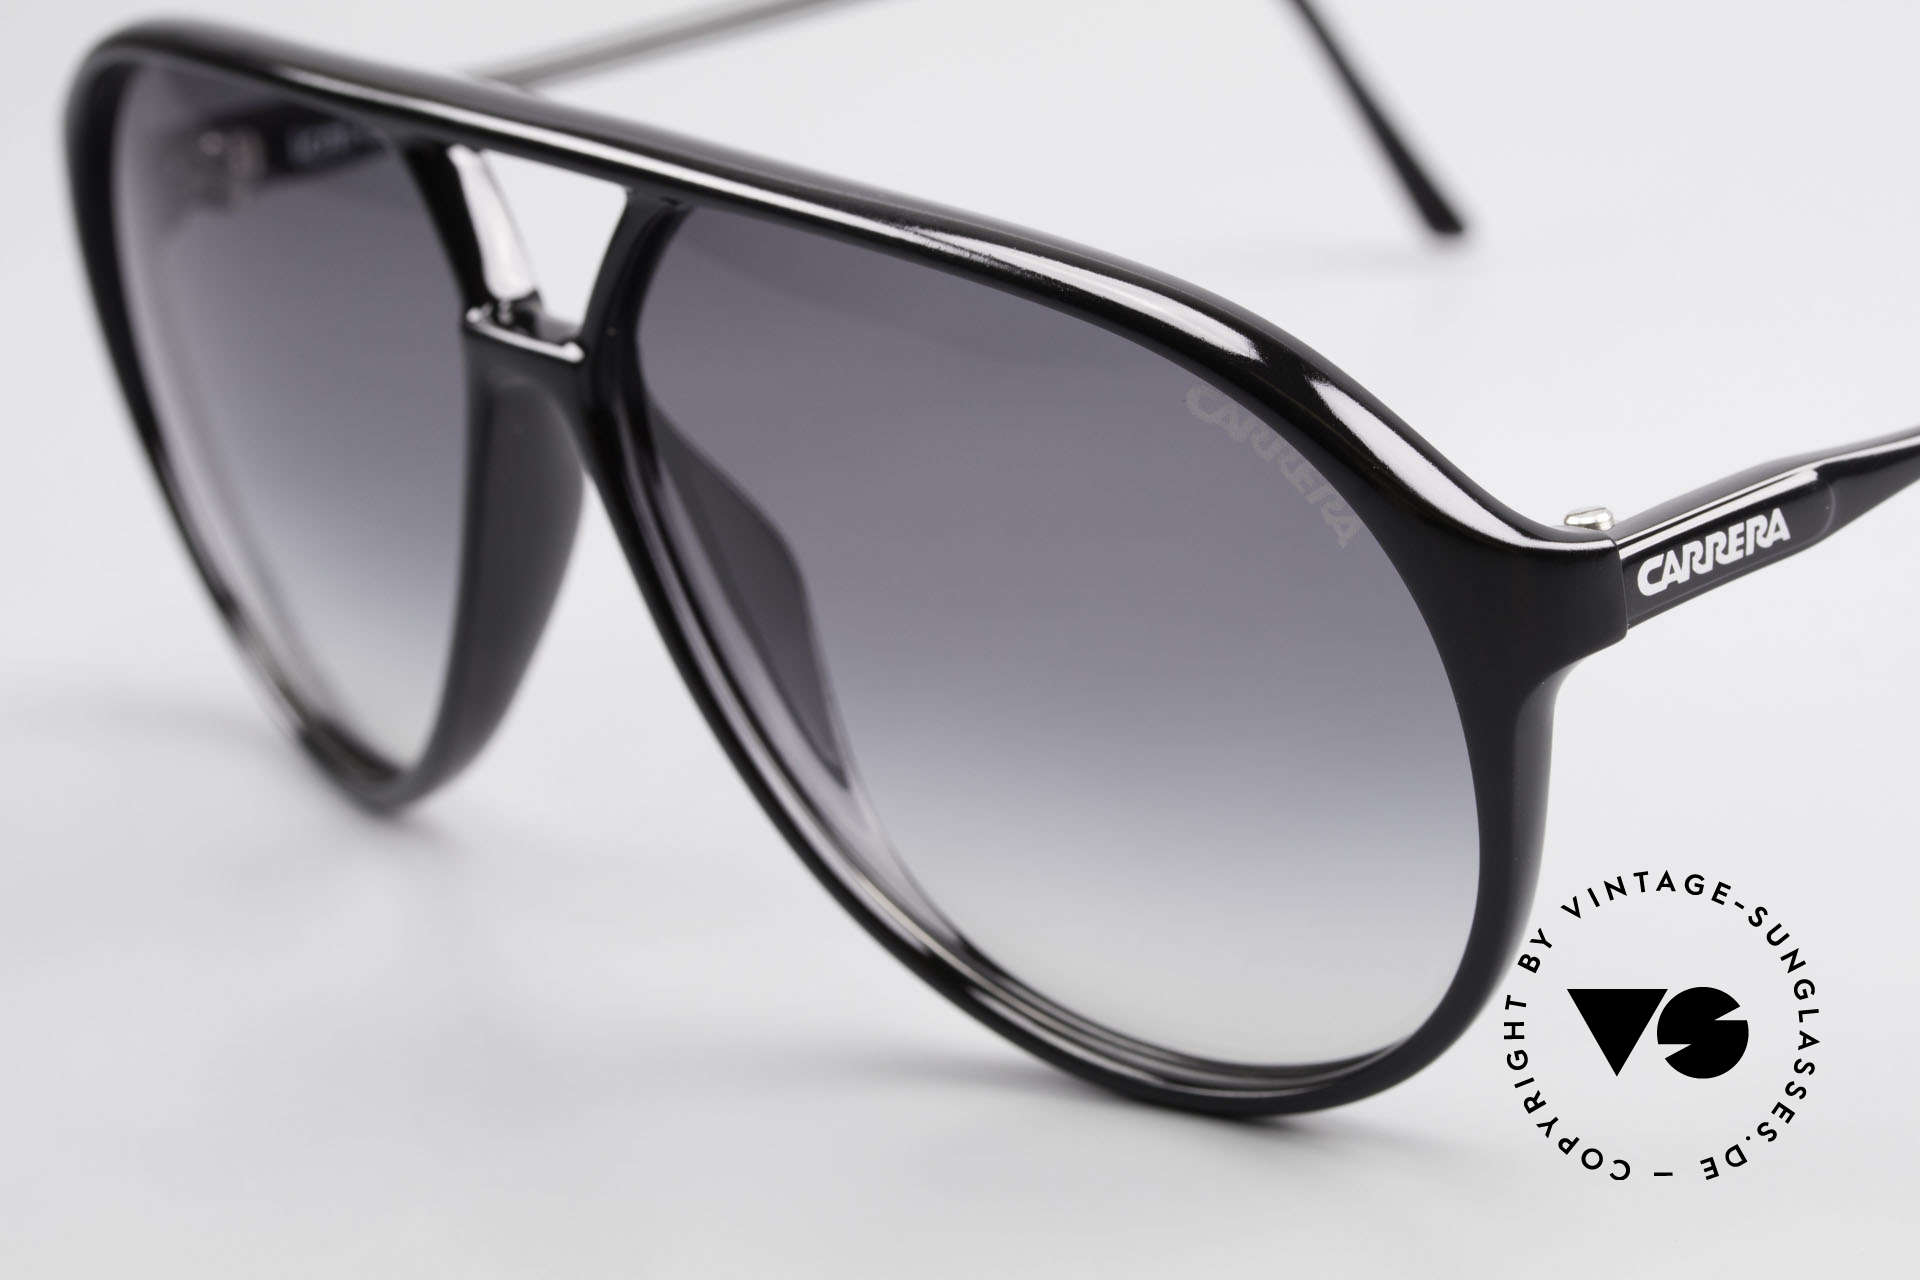 Carrera 5425 80's Shades With Extra Lenses, 2 sets of lenses: 1x gray-gradient and 1x brown-solid, Made for Men